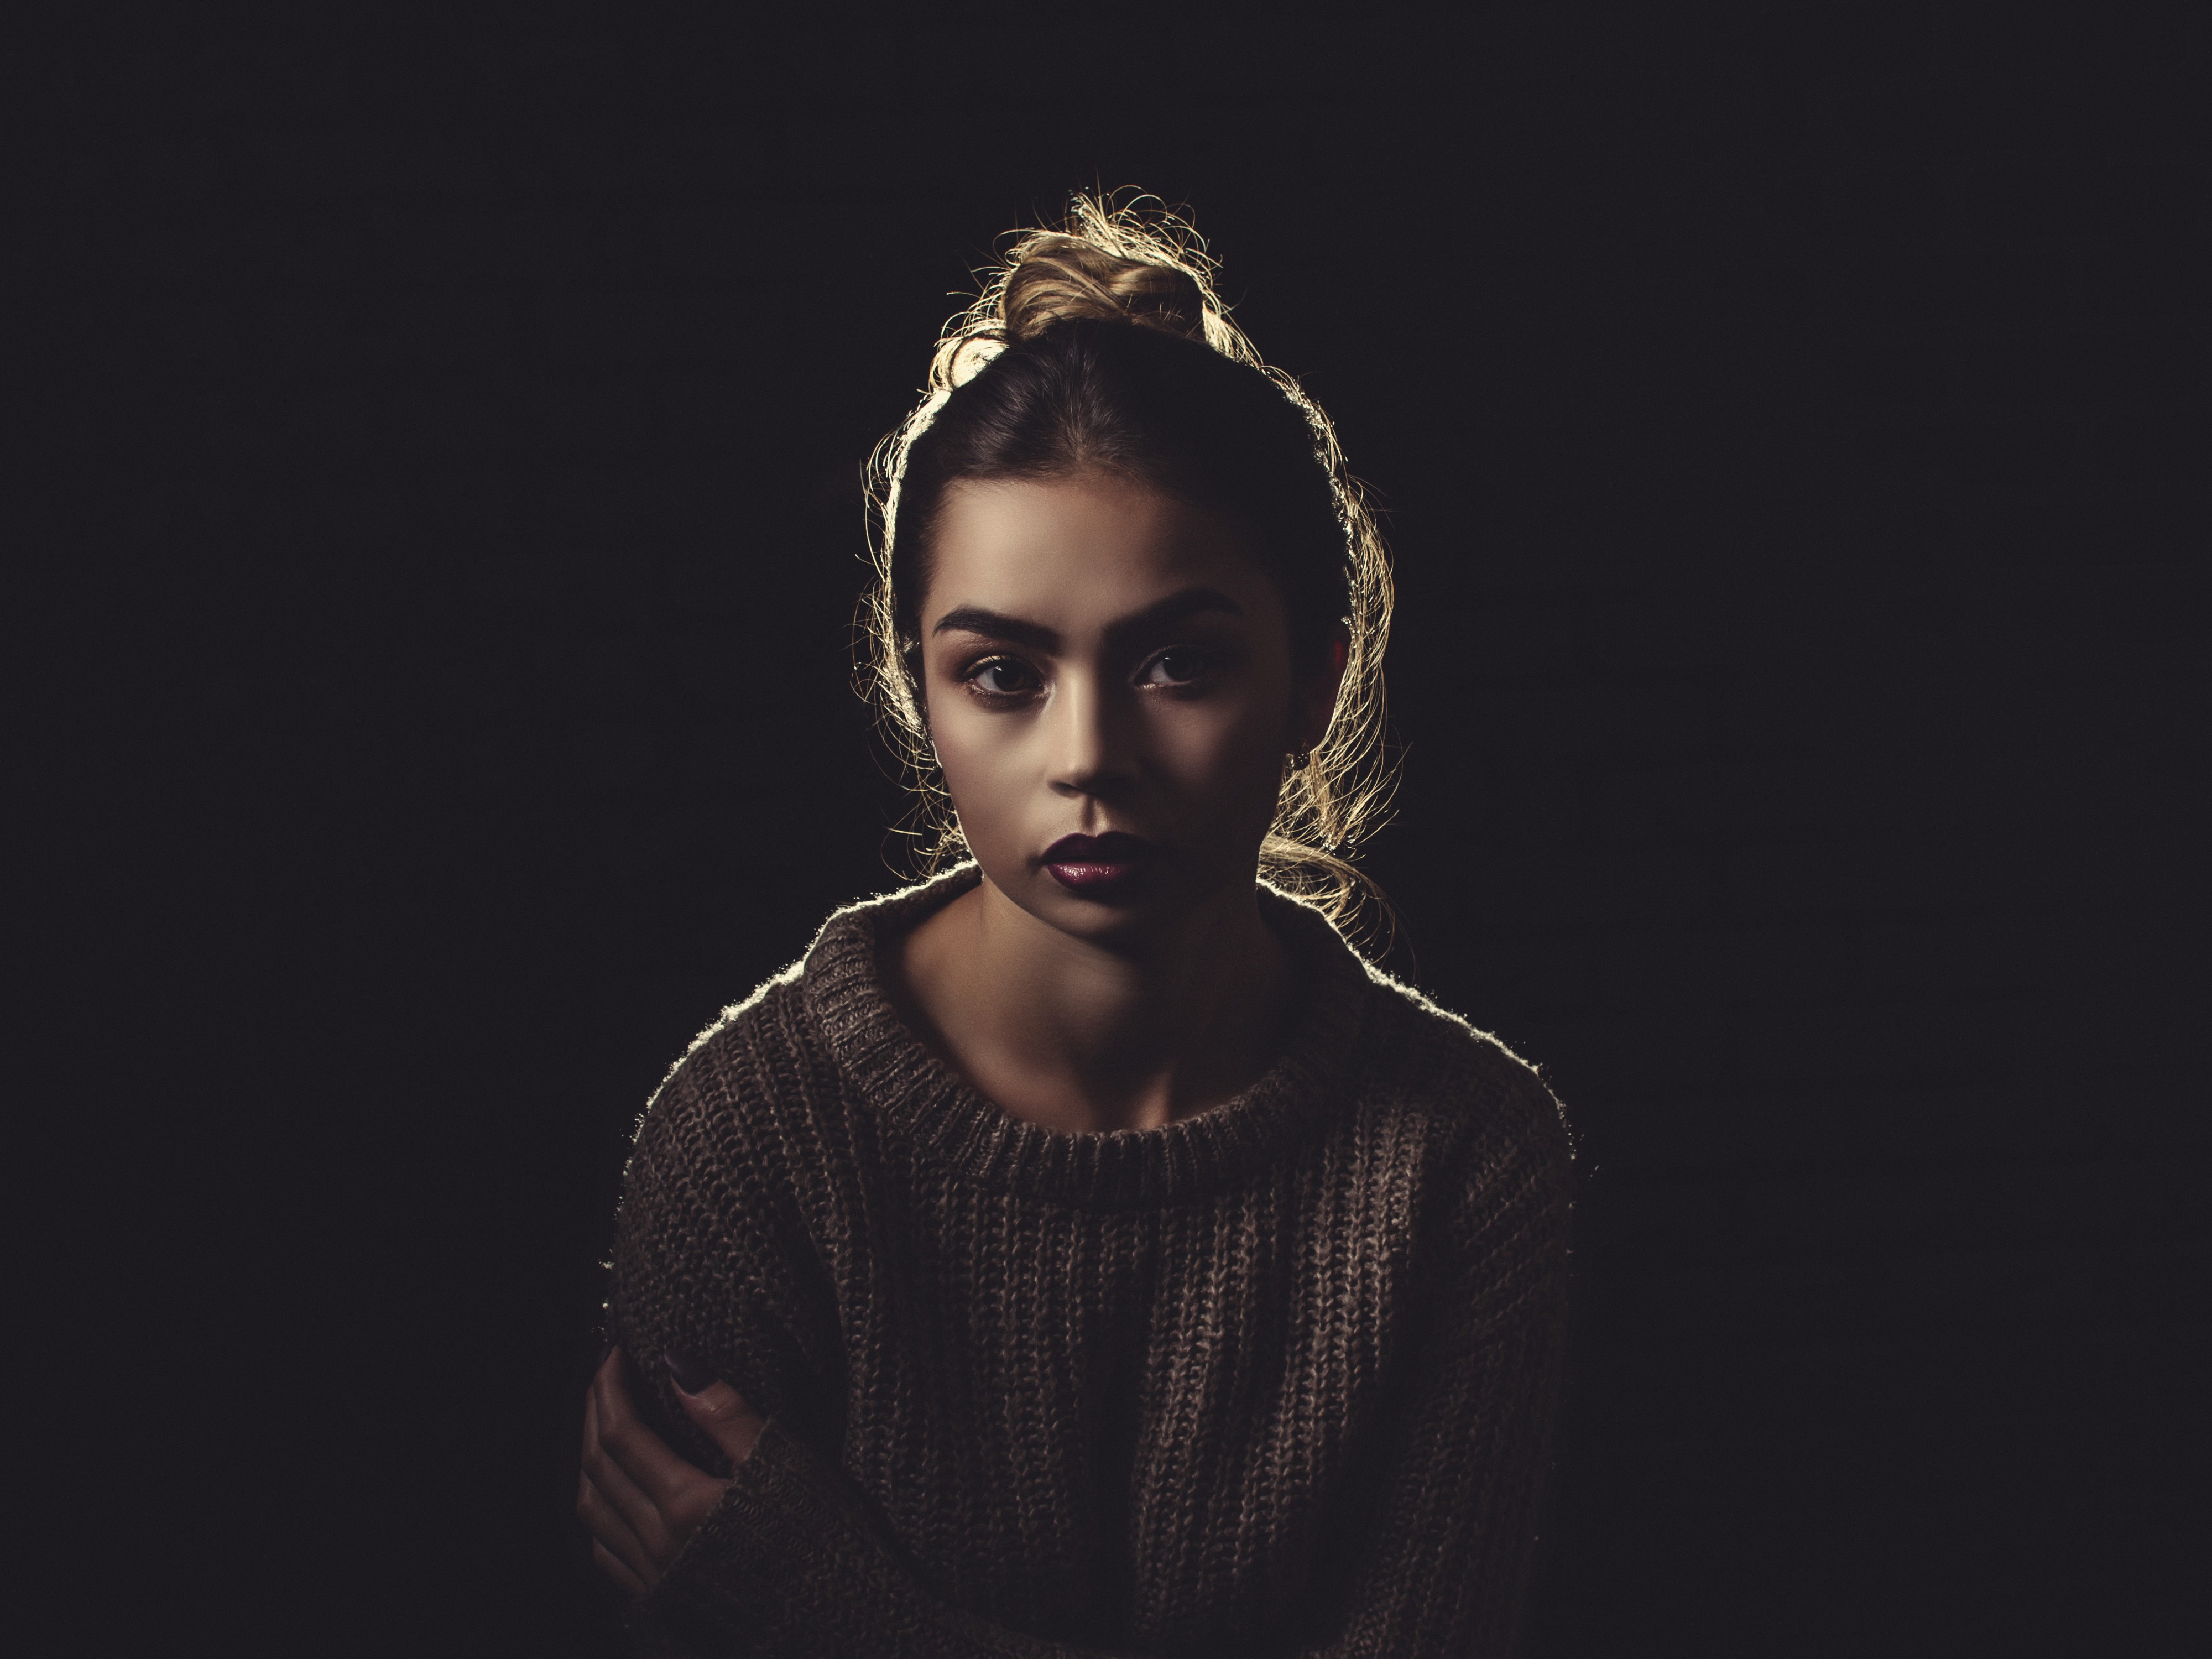 Portrait of a young woman against a black background.